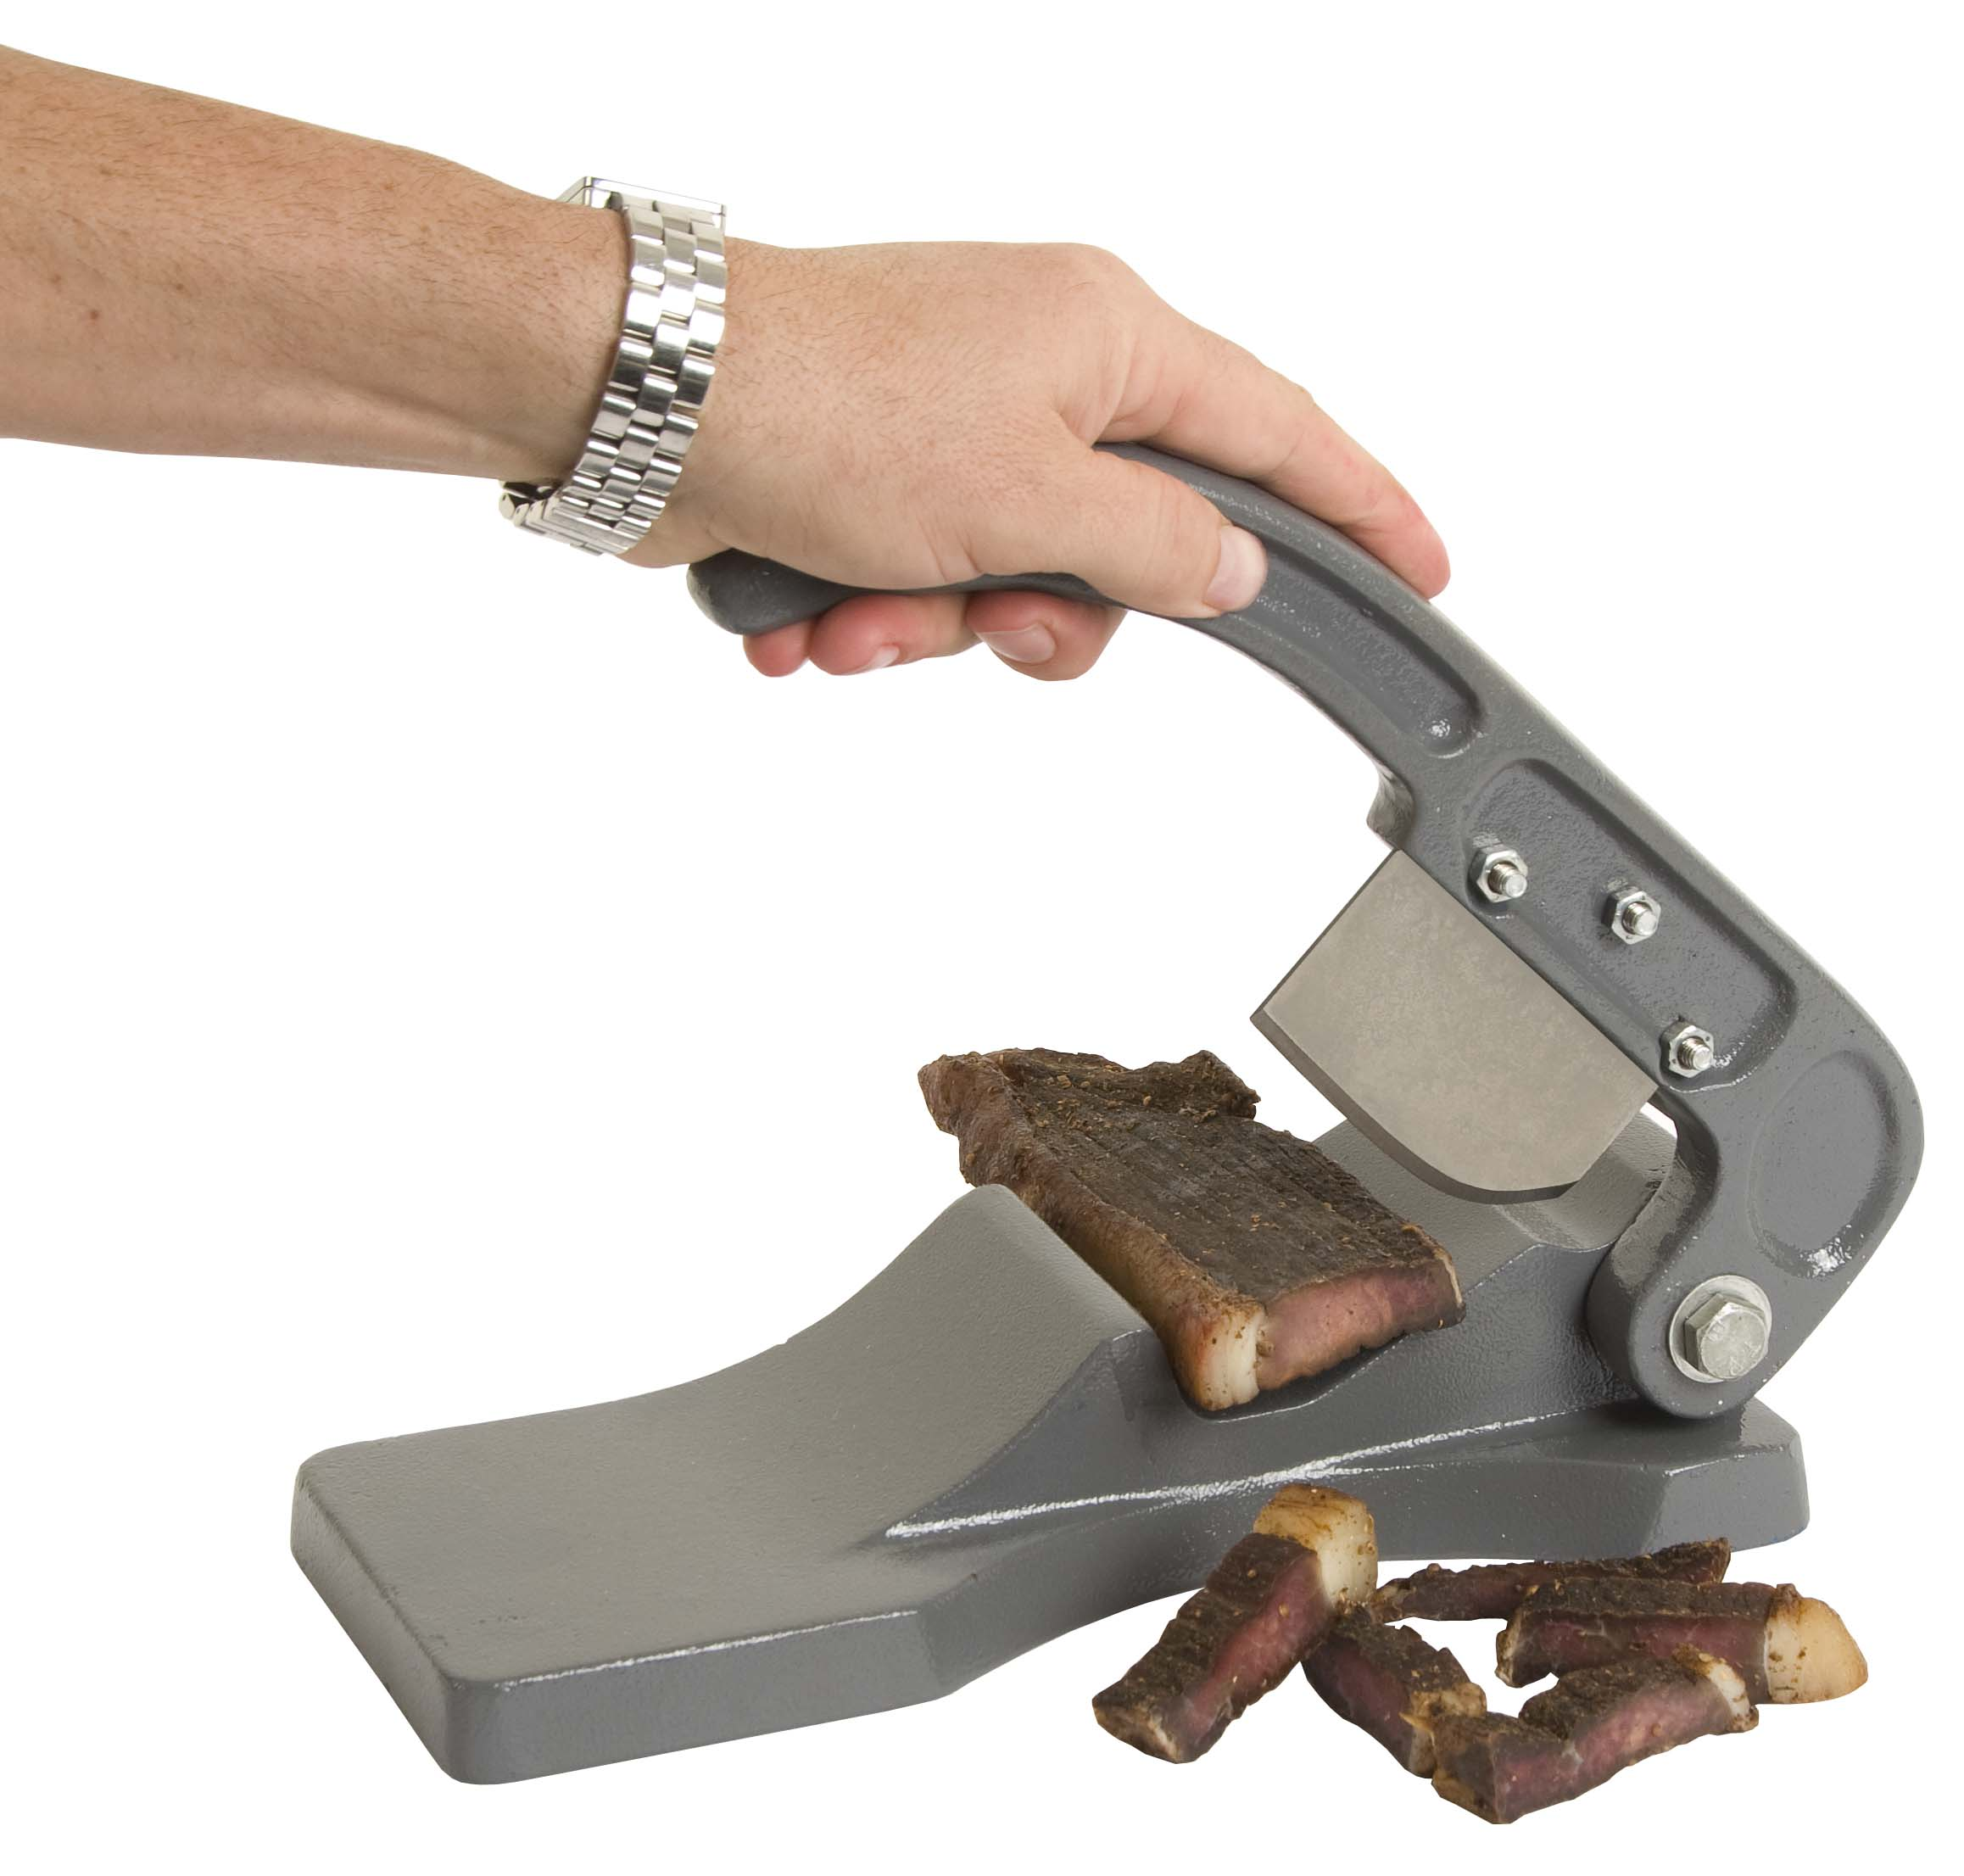 bcm0001--biltong-cutter-manual--aluminium-cast